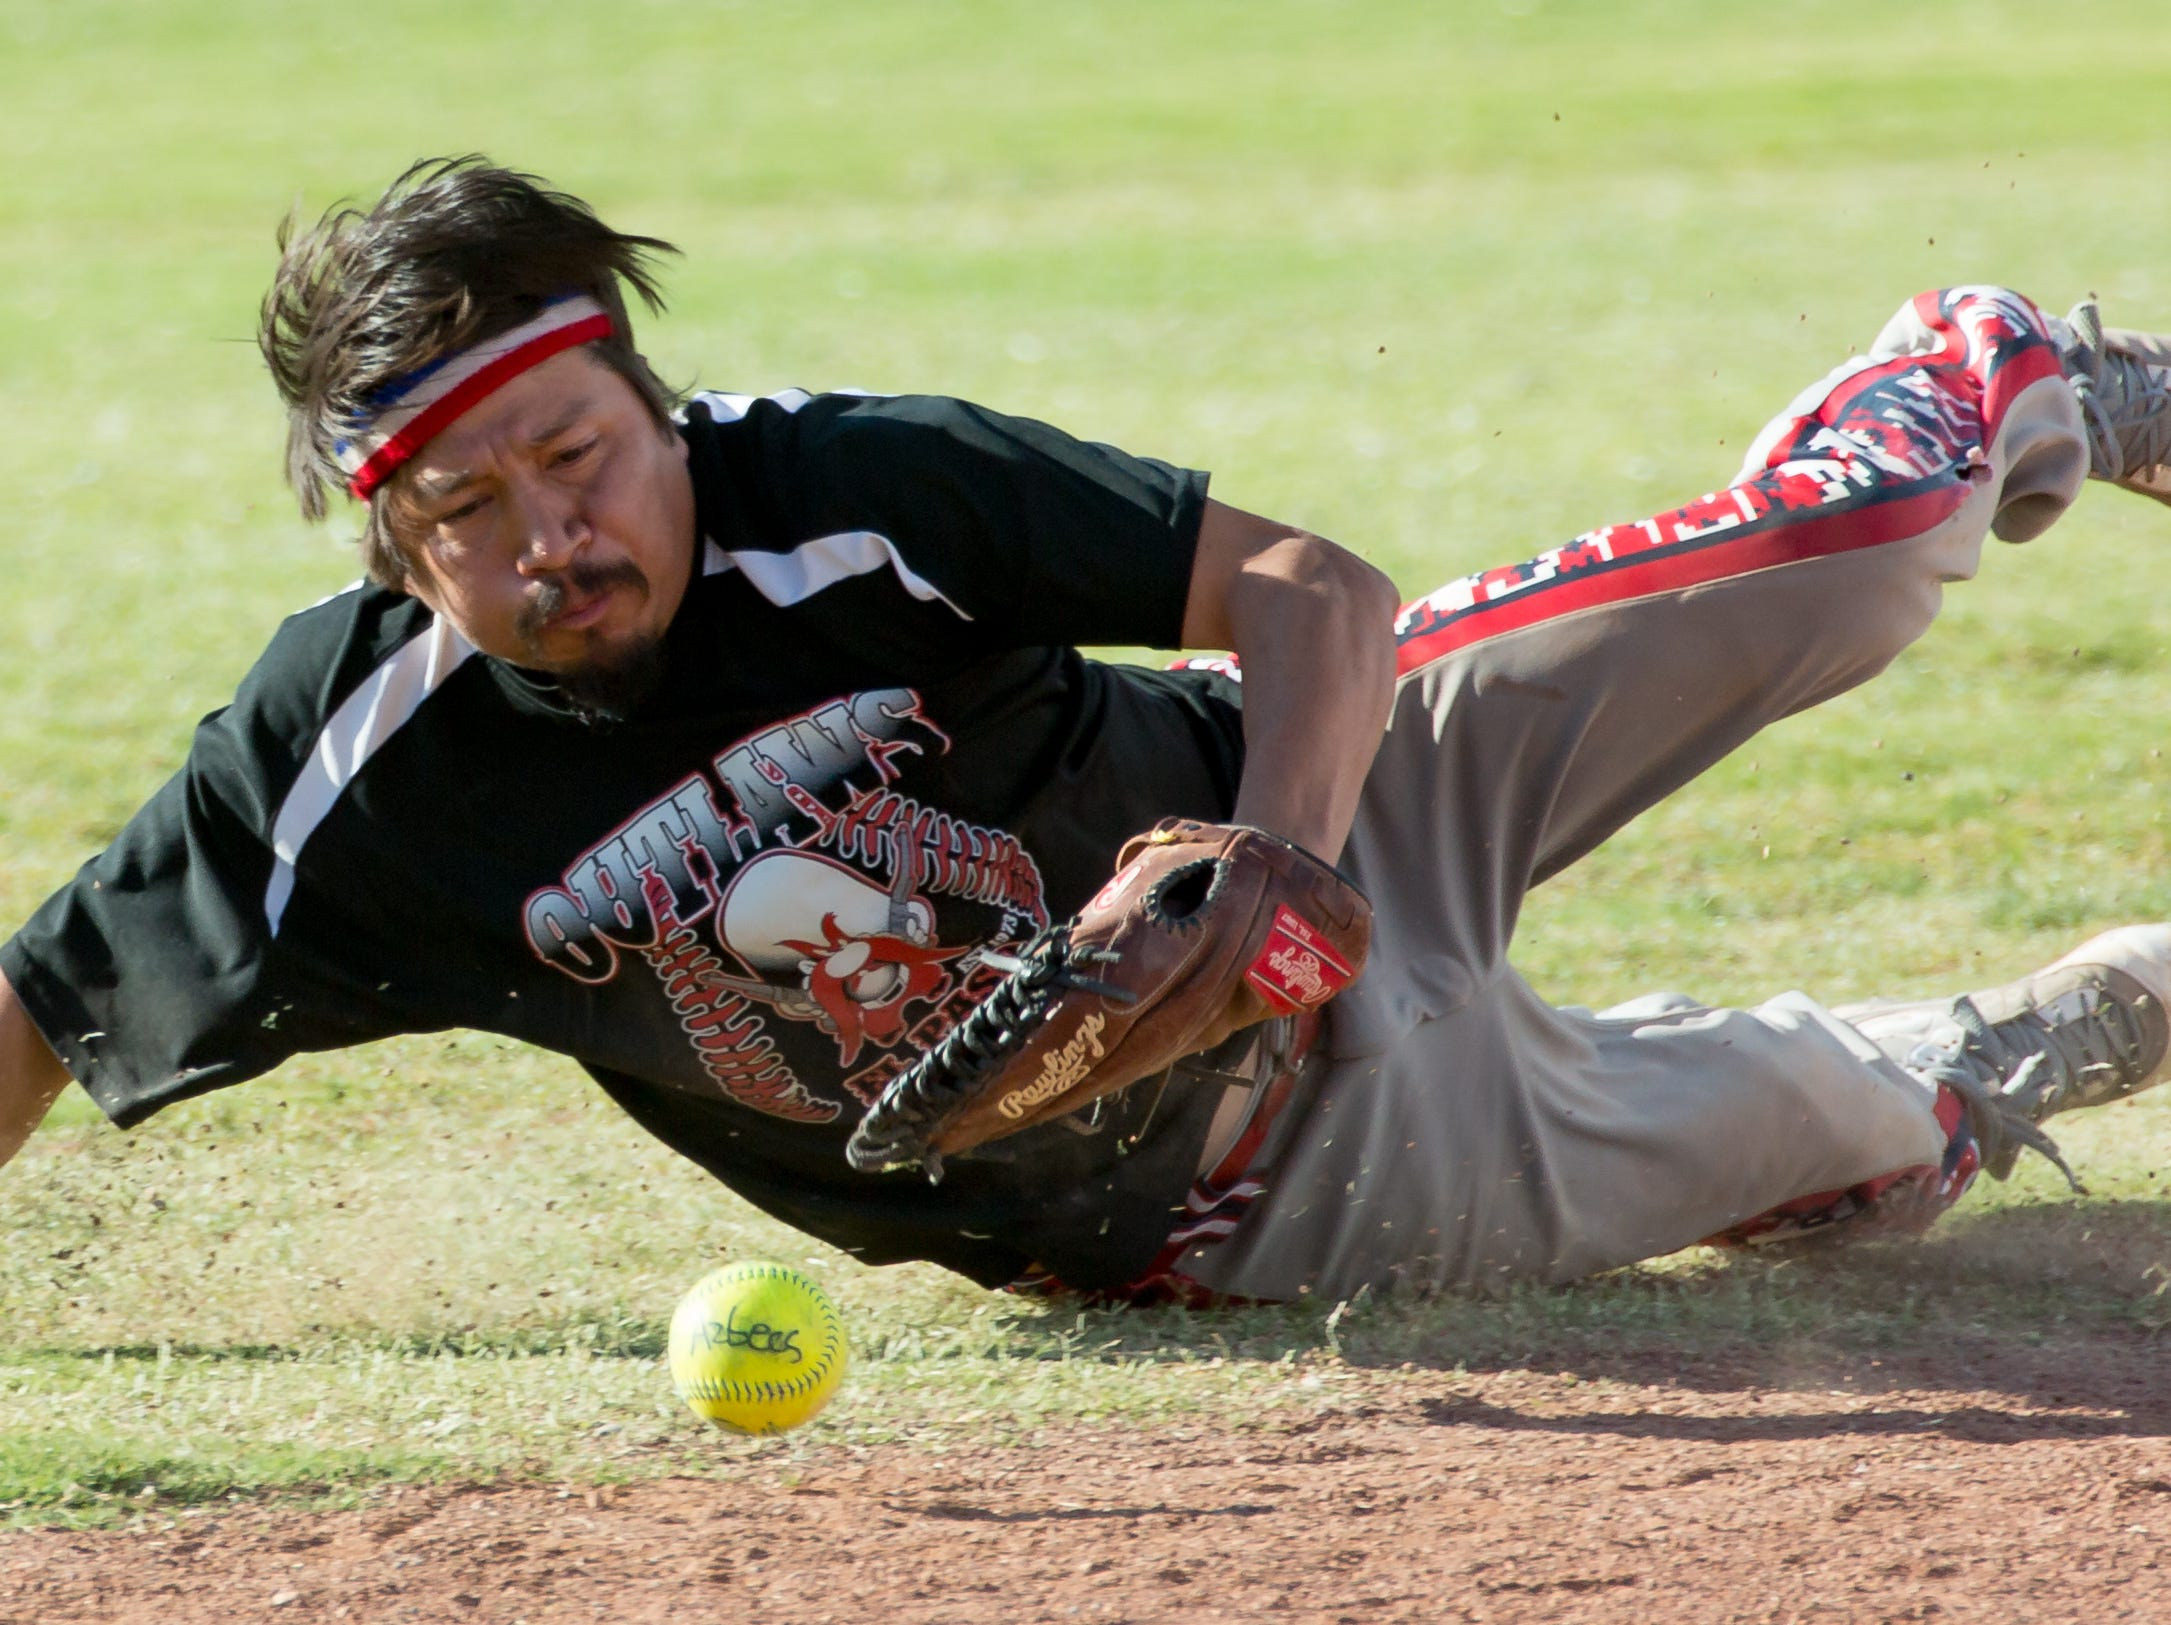 Outlaws team member Lucas Quimiro, of El Paso, Texas, dives on the ground for the ball  on Sunday, Oct. 7, 2018 during the 39th Whole Enchilada Invitational softball tournament at the Hadley complex.